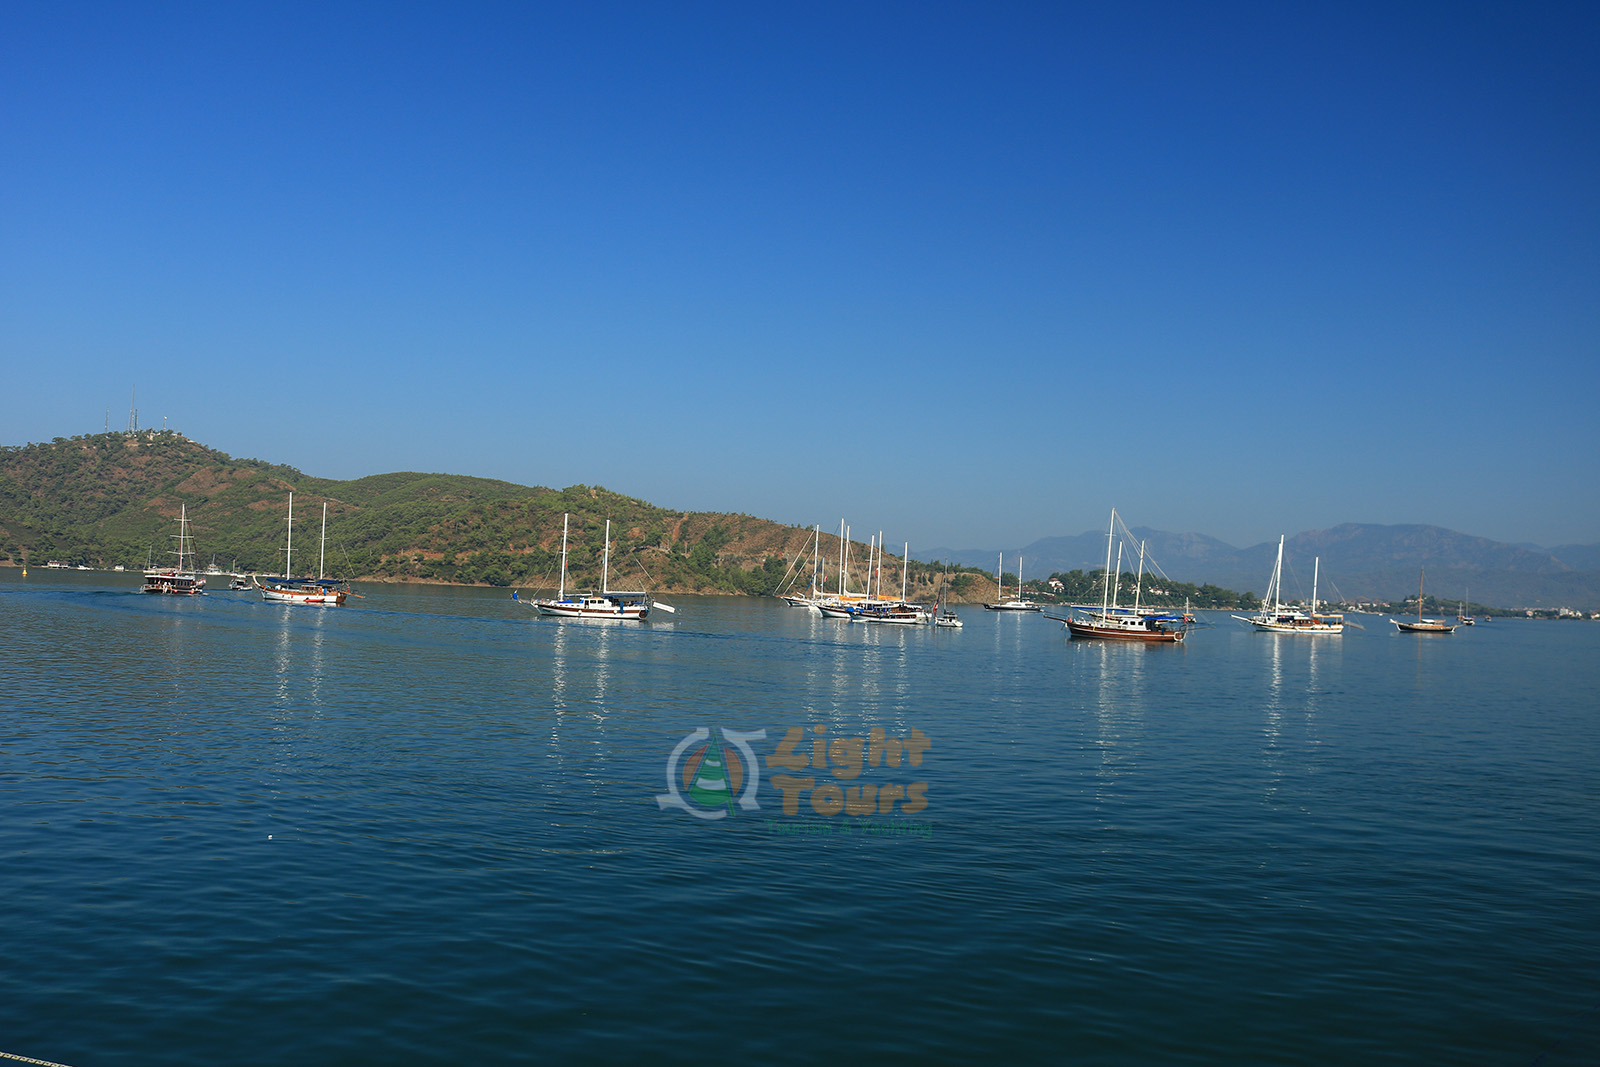 12 Islands Sailing Boat Trip, fethiye boat tour, light tours day tours,Light Tours Daily Tours, Discount Tours, Package Tours 406